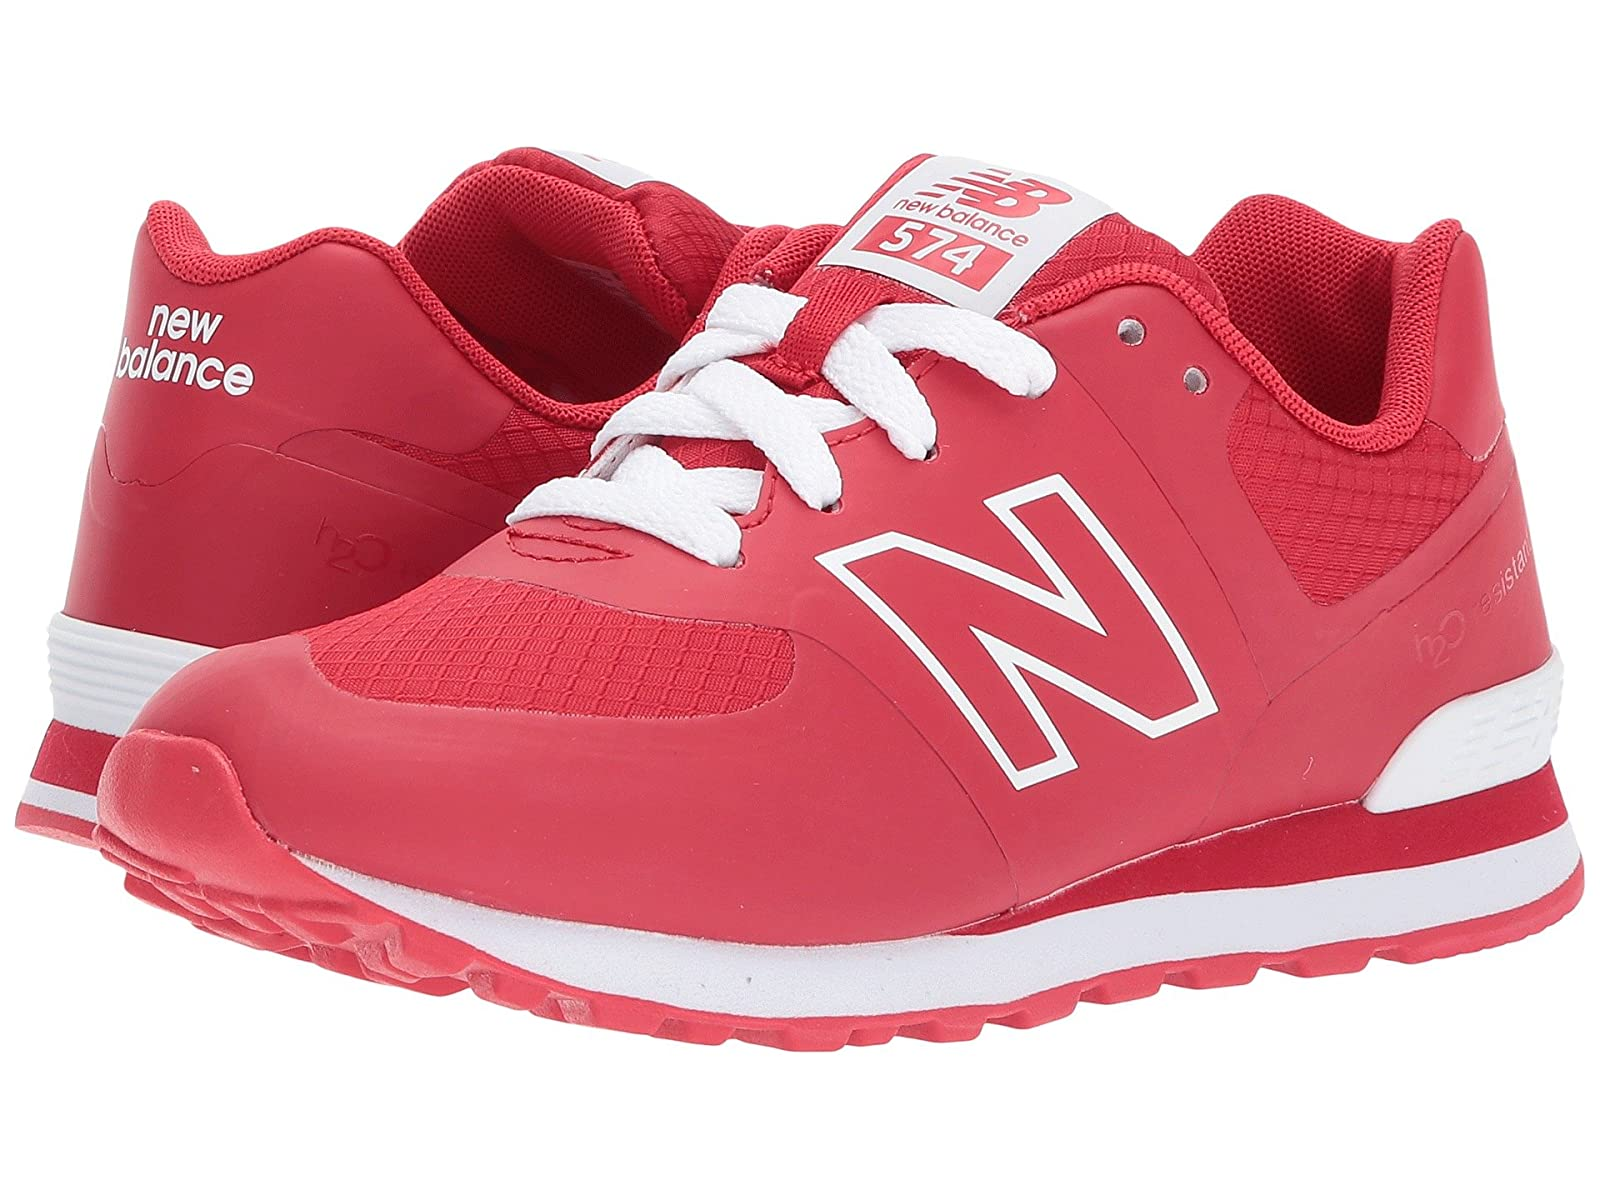 New Balance Kids KL574V1P (Little Kid)Cheap and distinctive eye-catching shoes